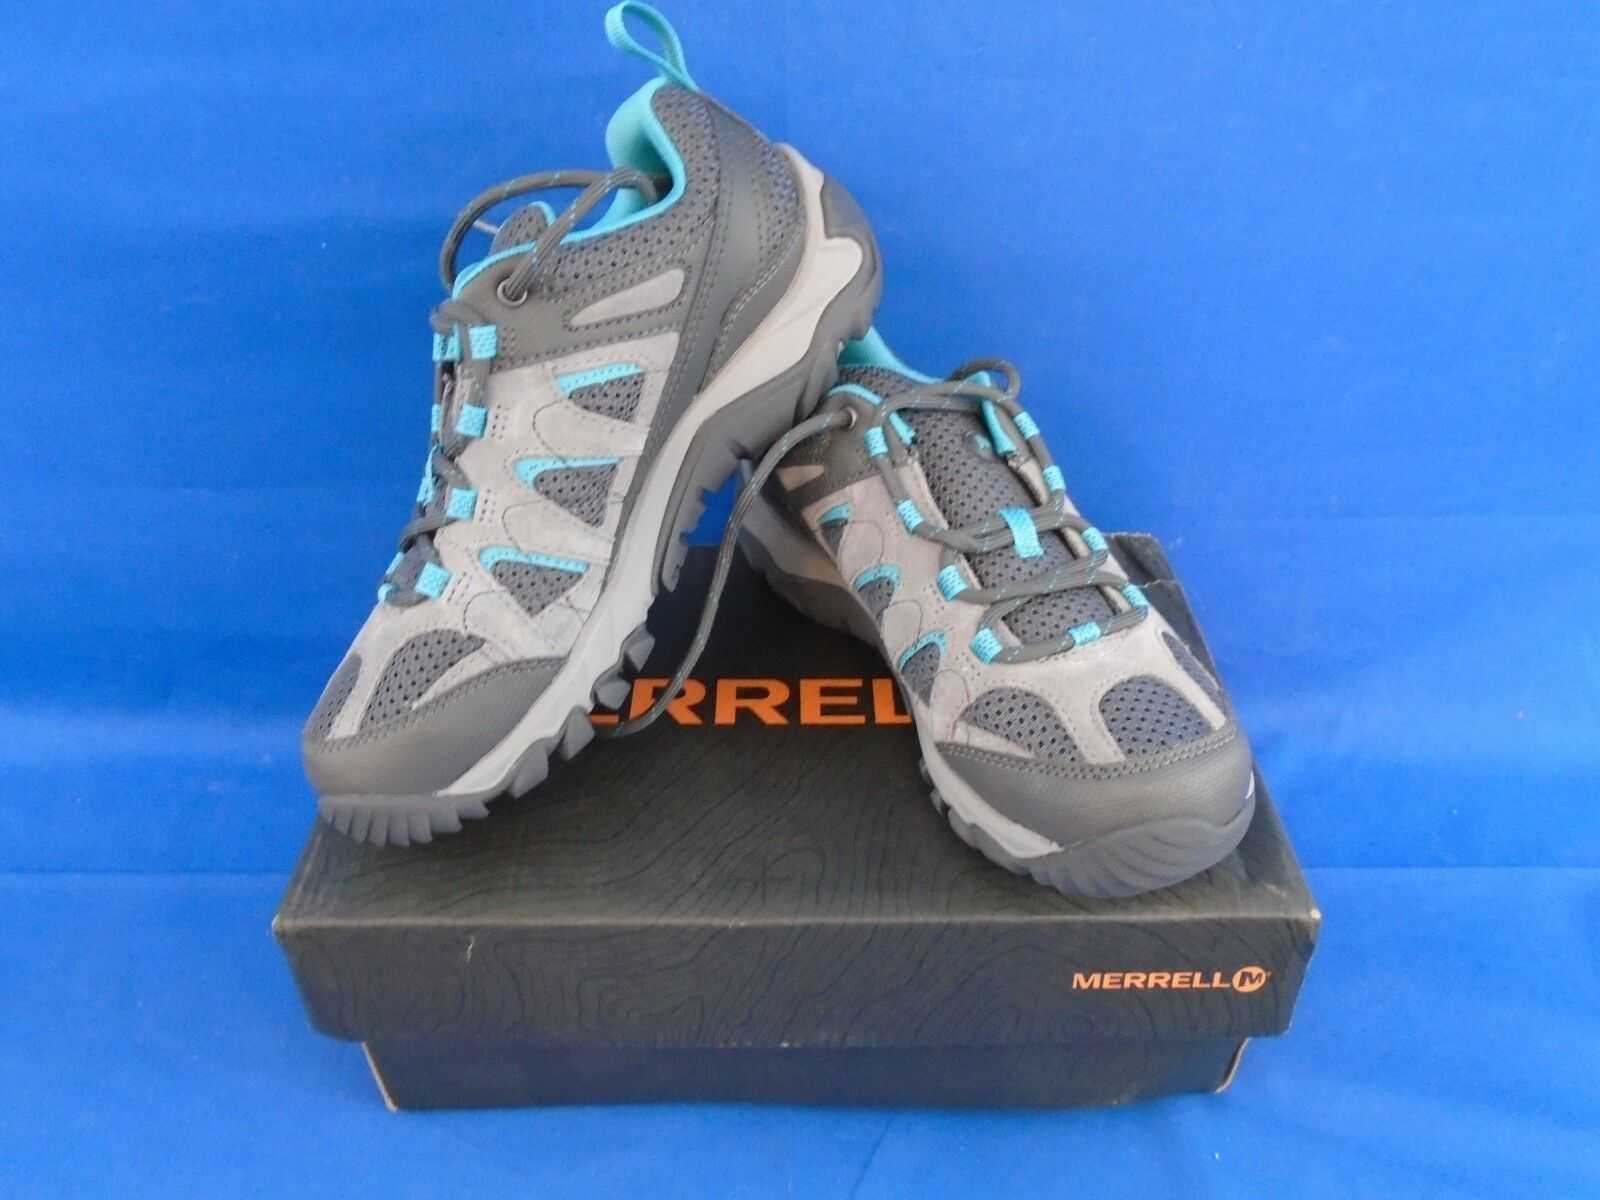 Merrell Women's Outmost Vent Hiking Shoe Frost Grey 6 M US